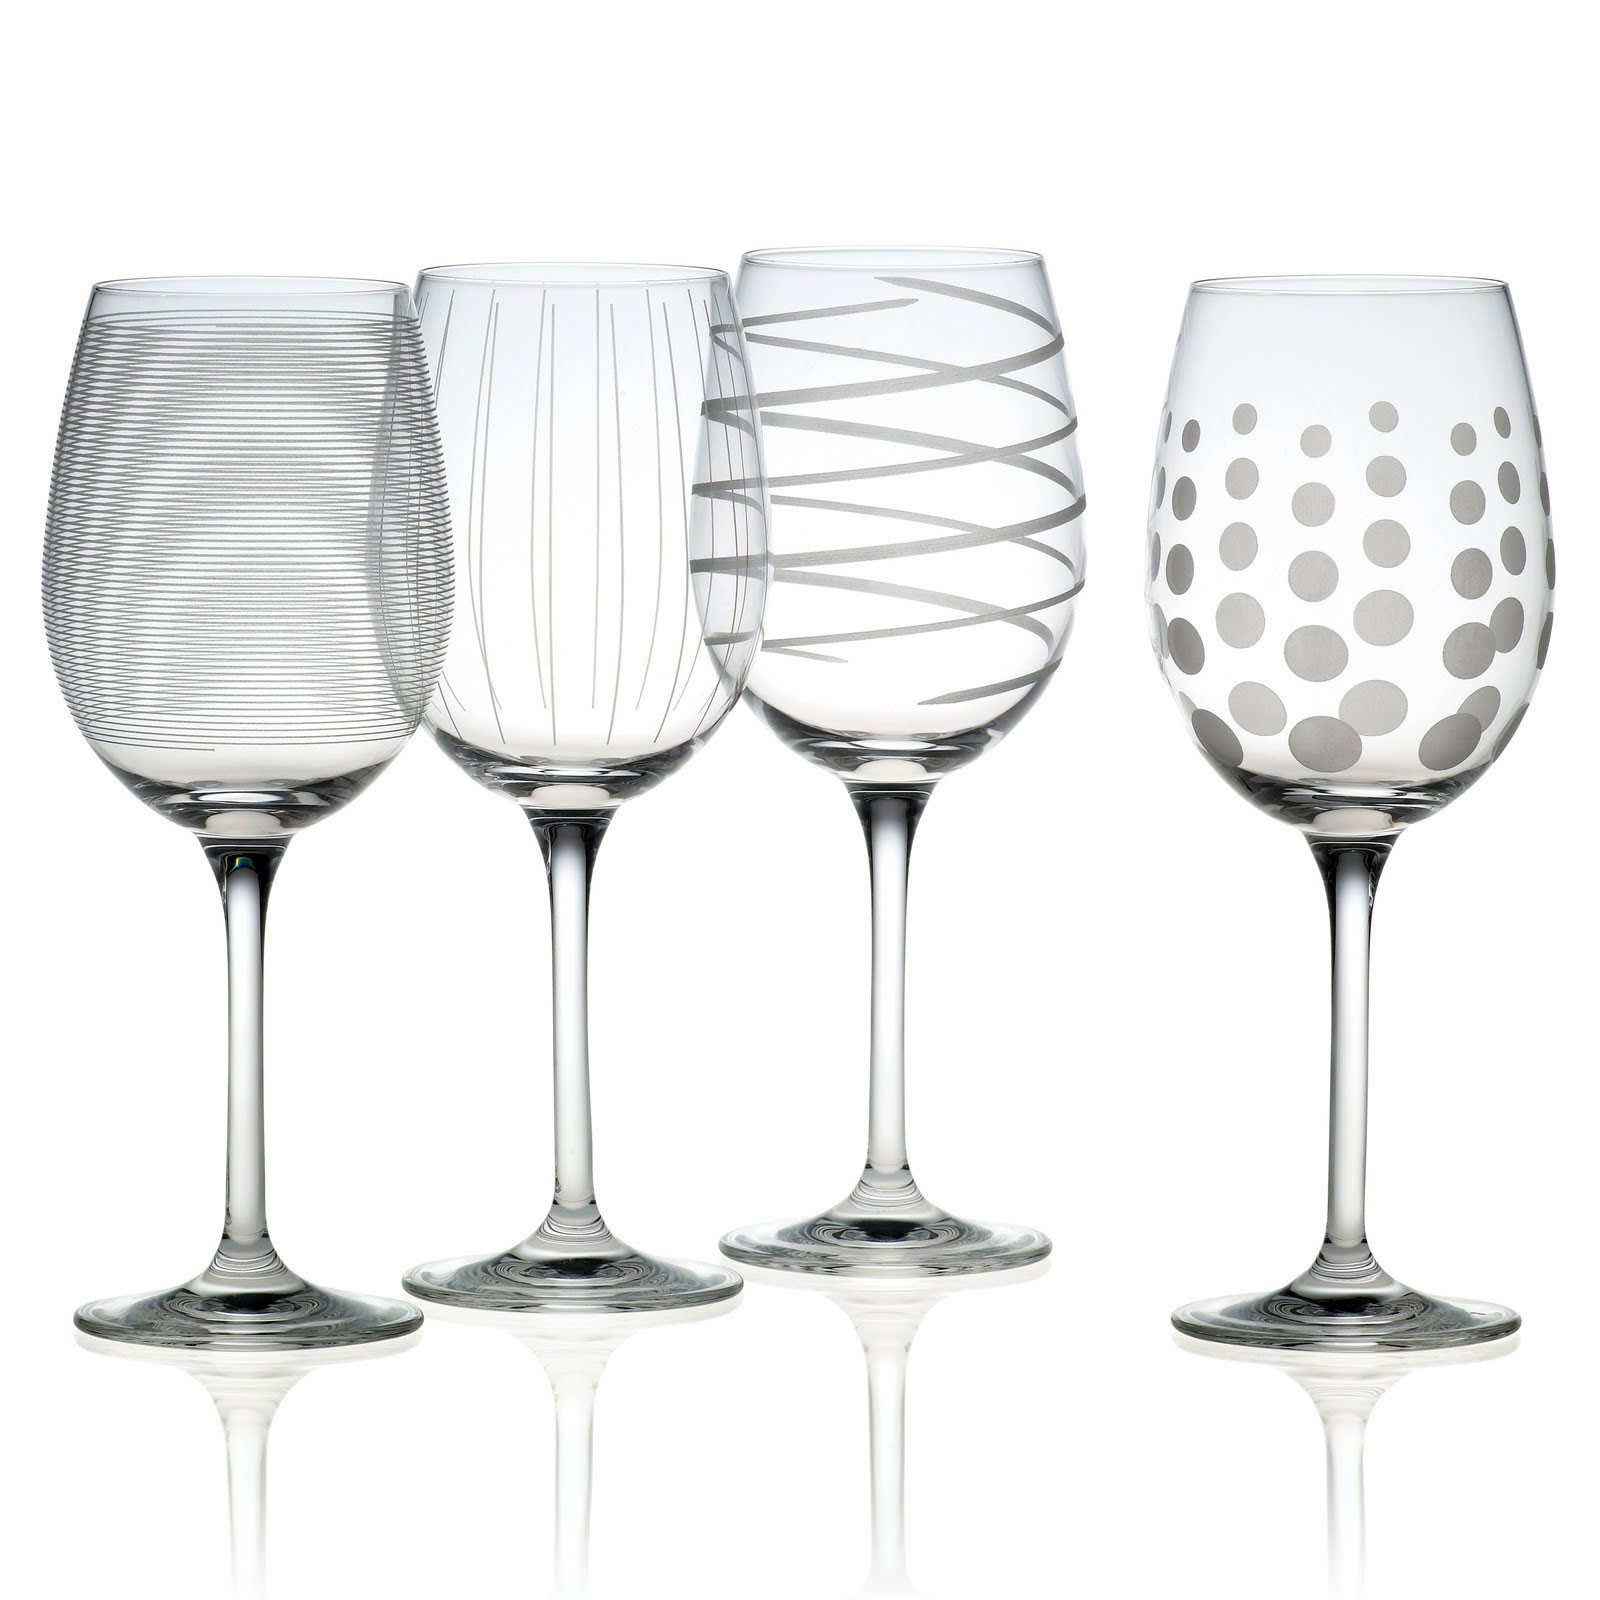 Adorable Mikasa Wine Glasses With Patterns